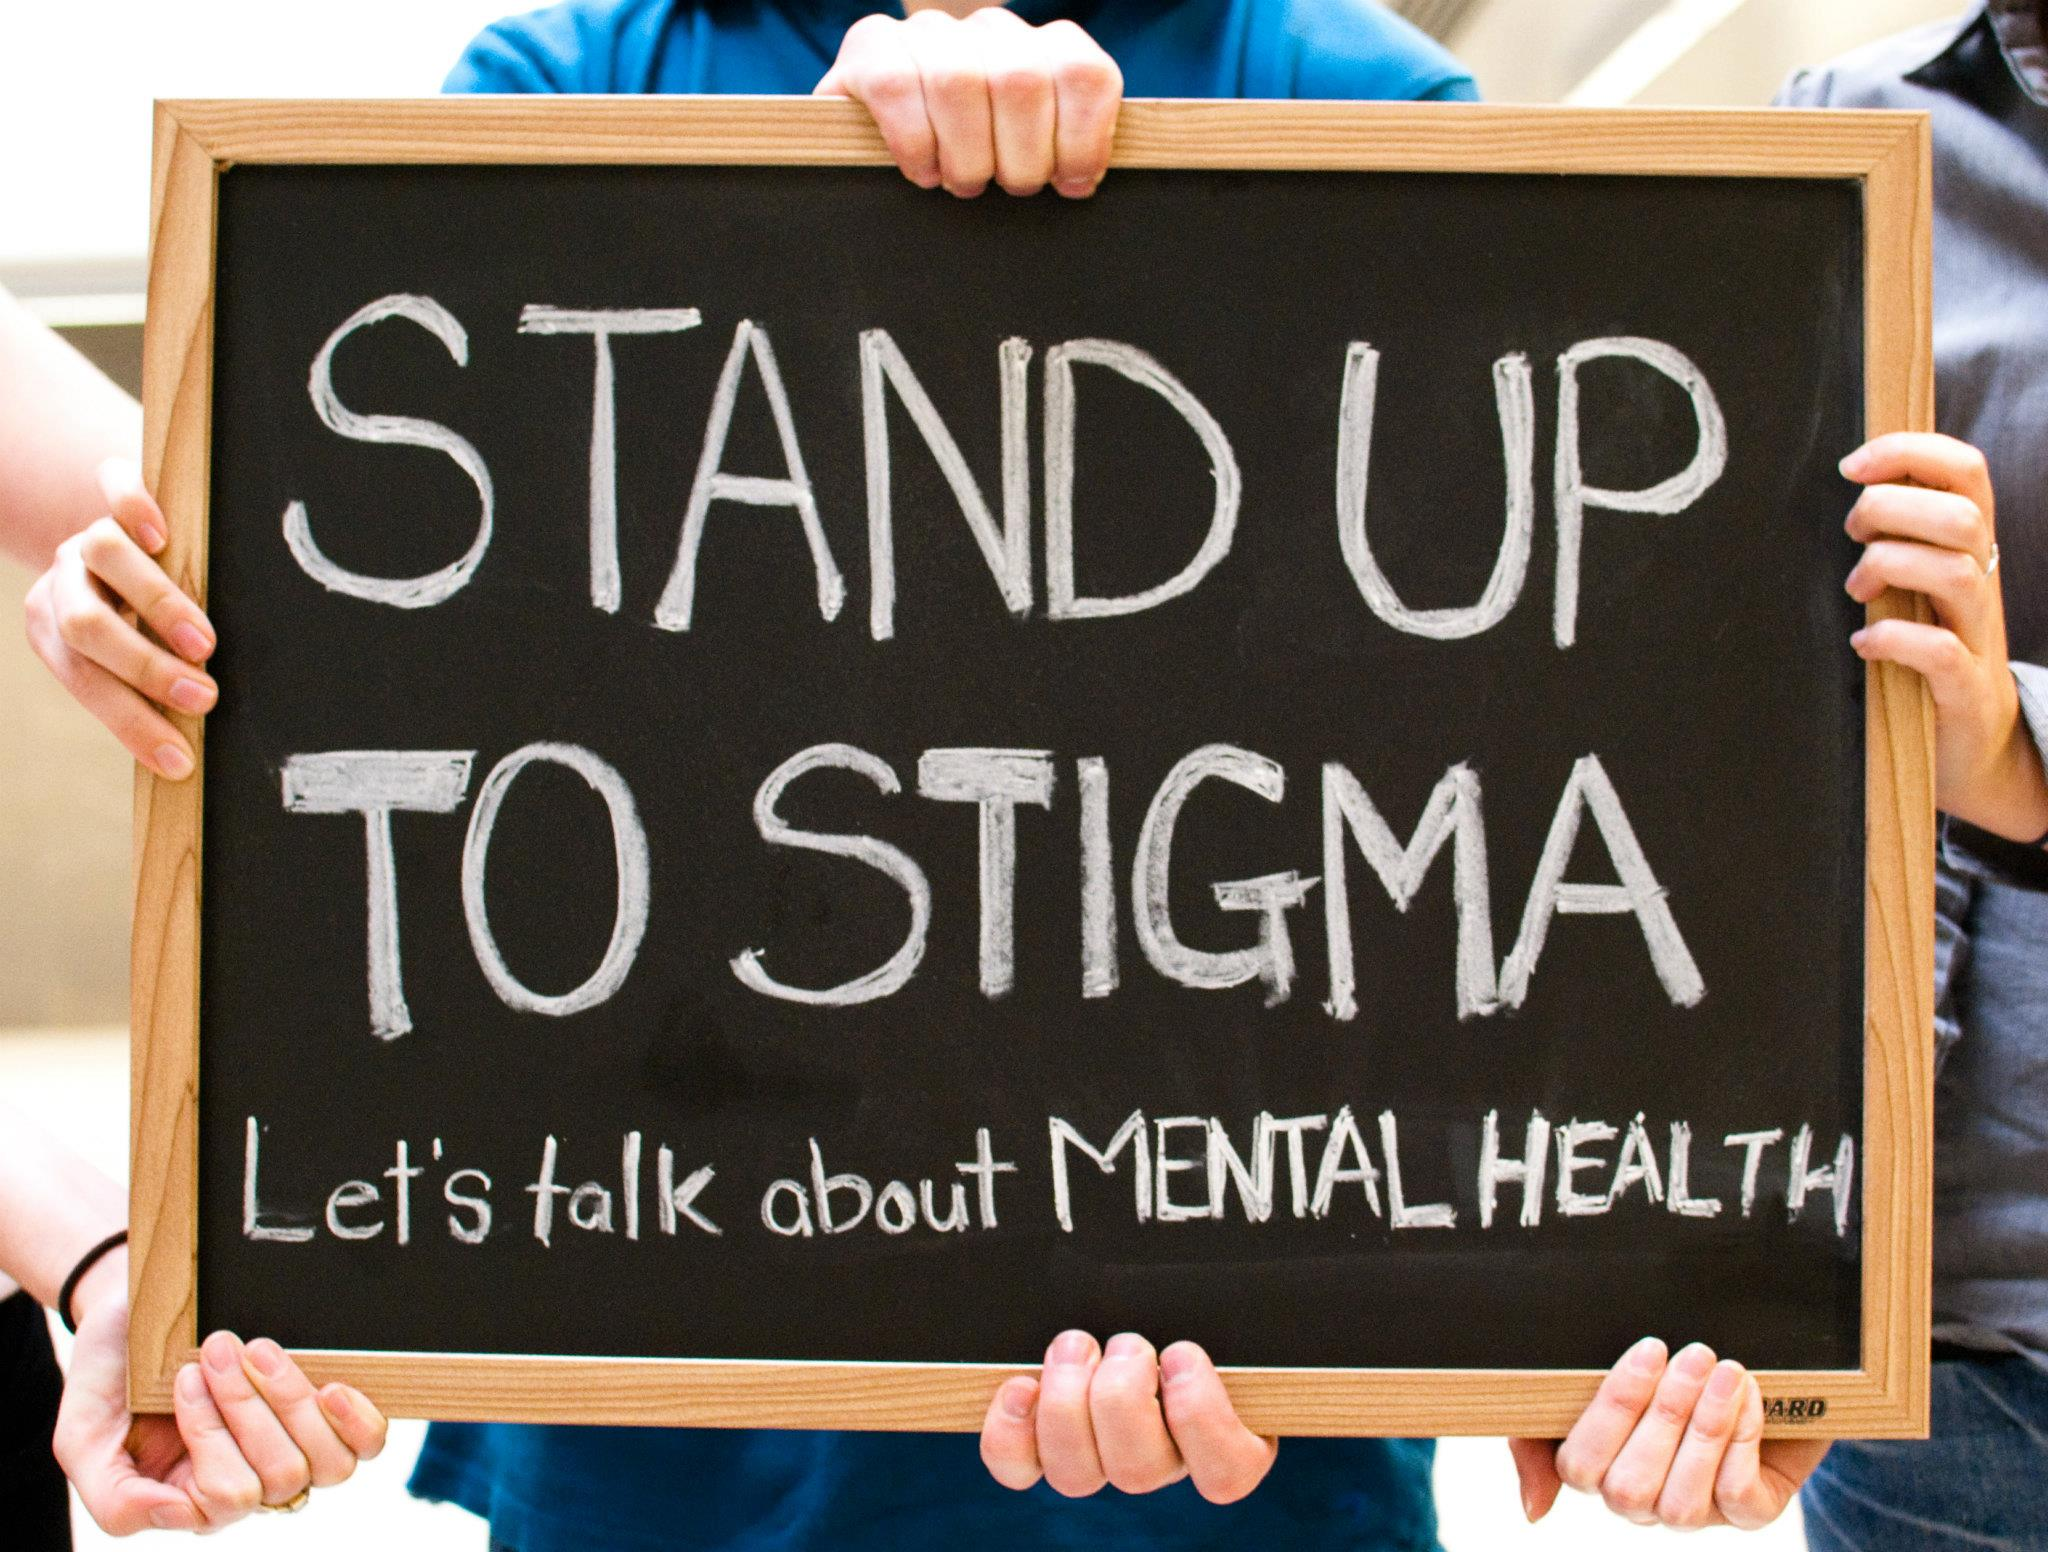 635895349923724103-443893601_lets-talk-about-mental-health[1]